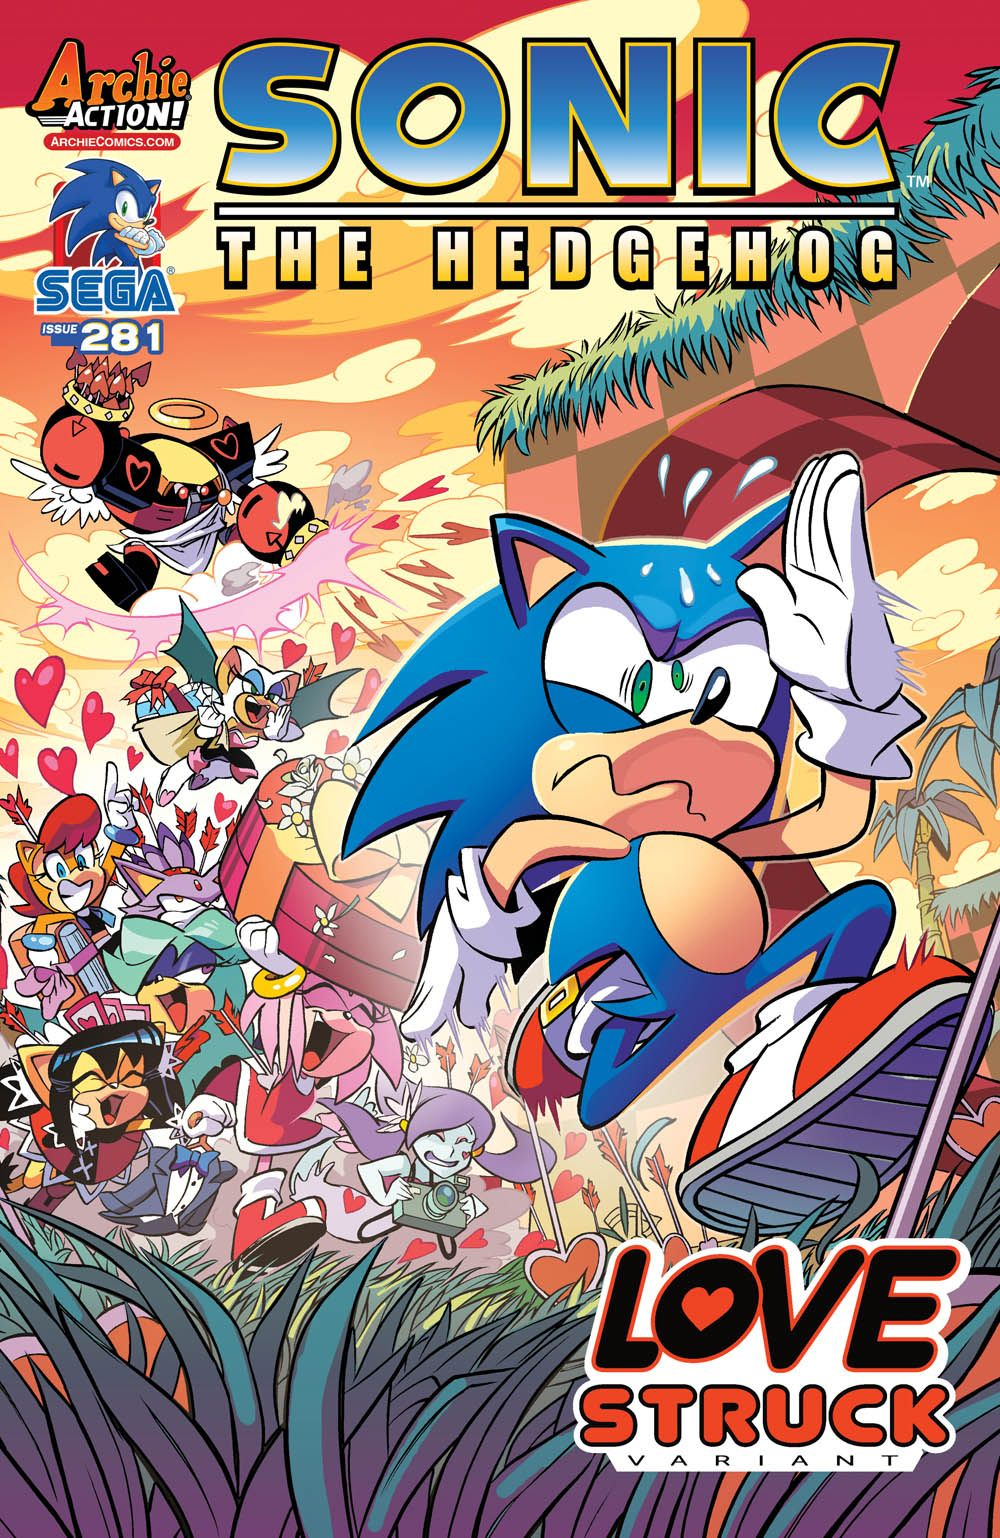 Sonic x screenshots sonic the hedgehog image sonic x episode 64 a - Shop For Sonic The Hedgehog Variant Cover B Diana Skelly From Archie Comic Publications Written By Ian Flynn Comic Book Hits Store Shelves On May 2016